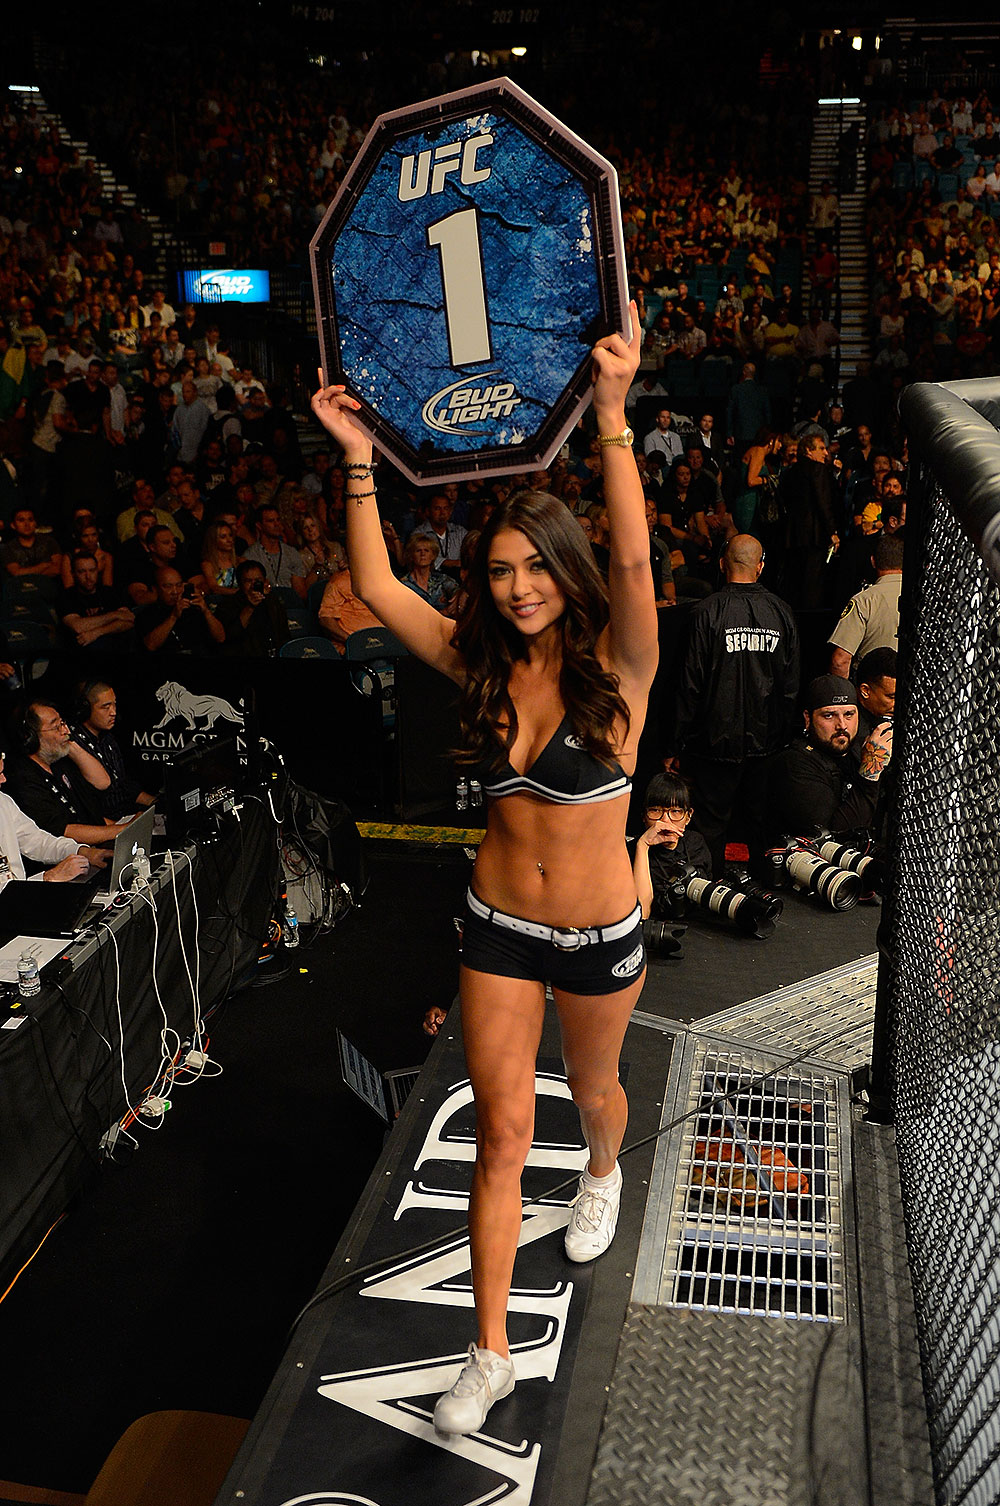 LAS VEGAS, NV - JULY 7:   UFC Octagon Girl Arianny Celeste introduces round one of Guillard vs Camoes during UFC 148 inside MGM Grand Garden Arena on July 7, 2012 in Las Vegas, Nevada.  (Photo by Donald Miralle/Zuffa LLC/Zuffa LLC via Getty Images)  *** Local Caption *** Arianny Celeste